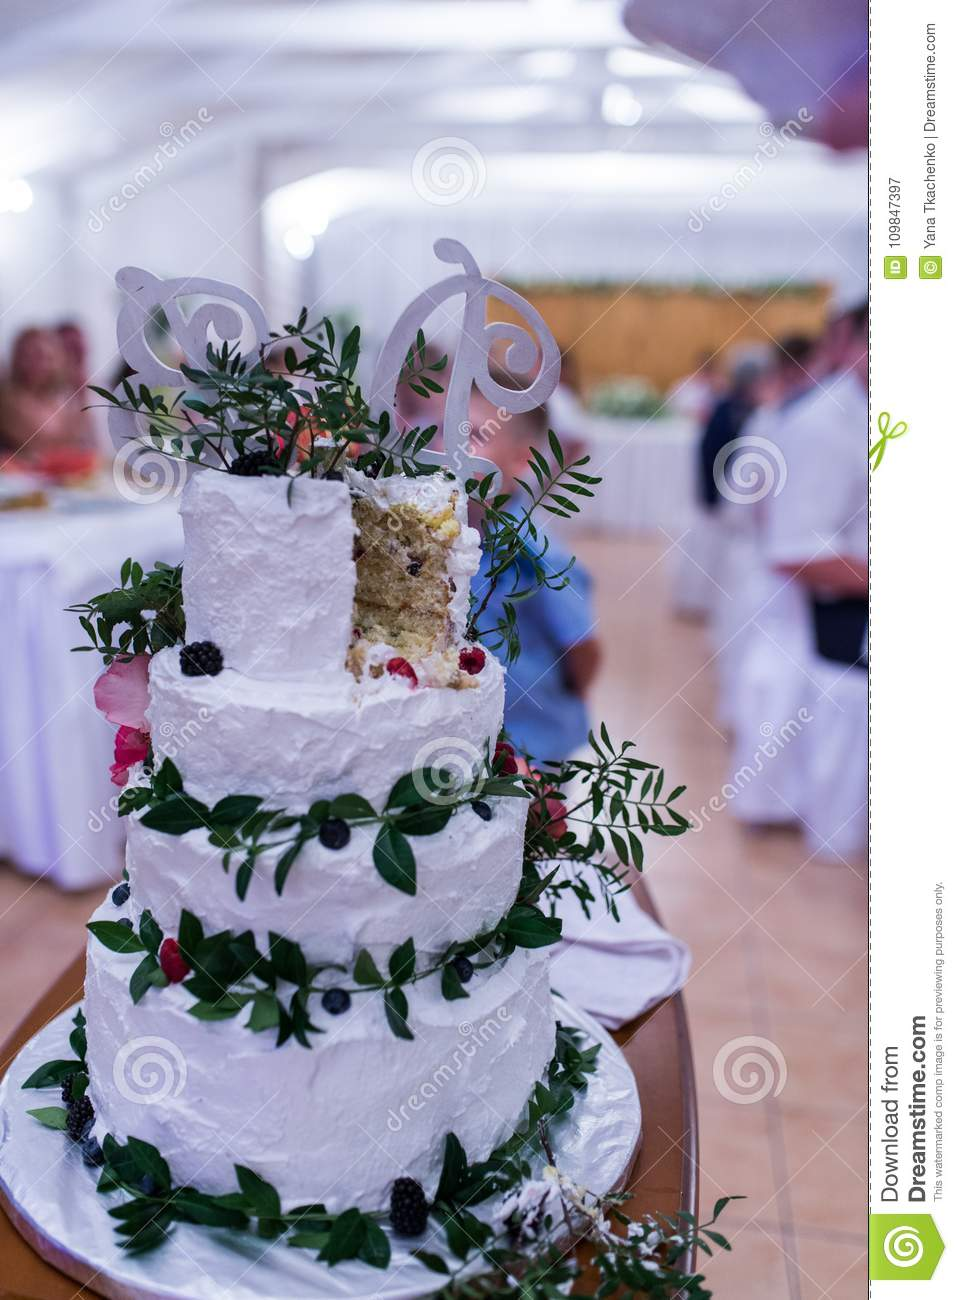 Beautiful four tiered white wedding cake with pink flowers and download beautiful four tiered white wedding cake with pink flowers and greenery stock image mightylinksfo